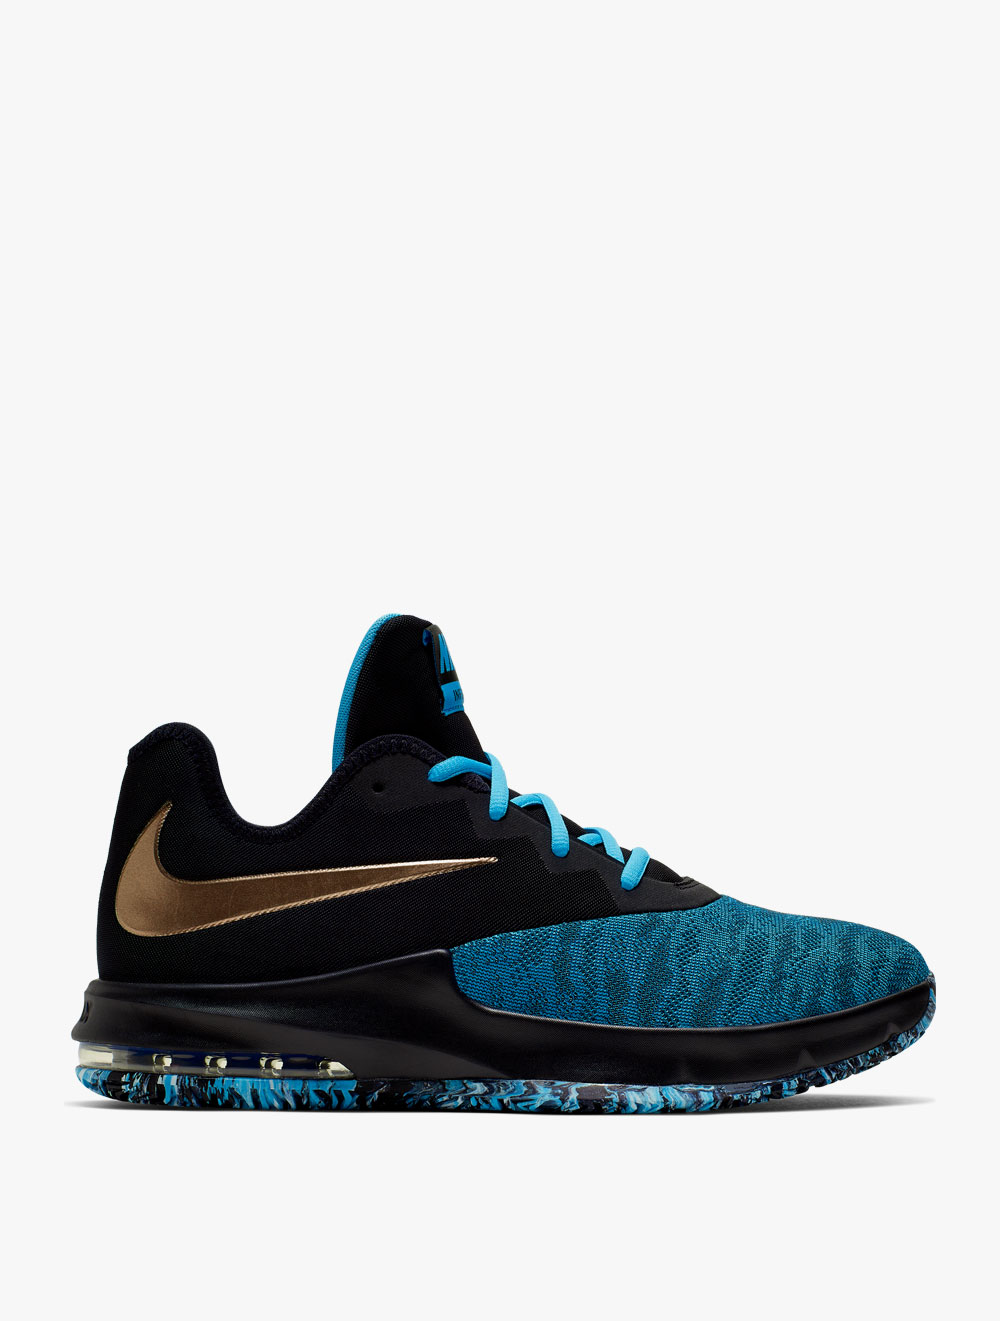 Shop Men's Shoes & Clothes From Nike Planet Sports on